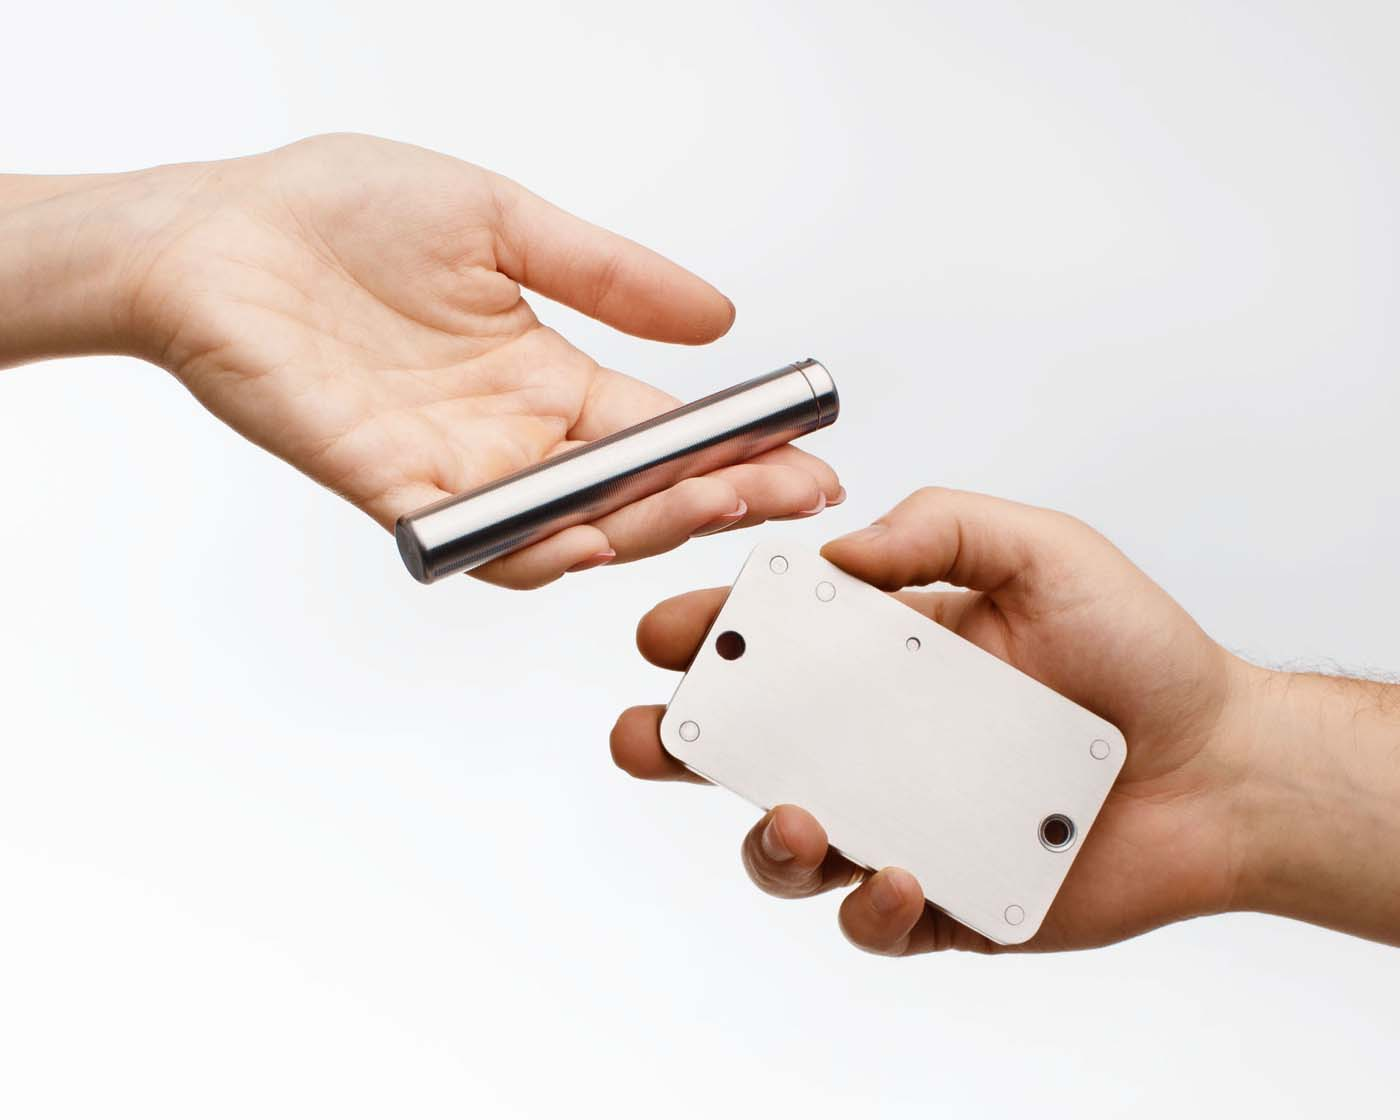 Two hands holding a Cryptosteel Capsule and a Cryptosteel Cassette